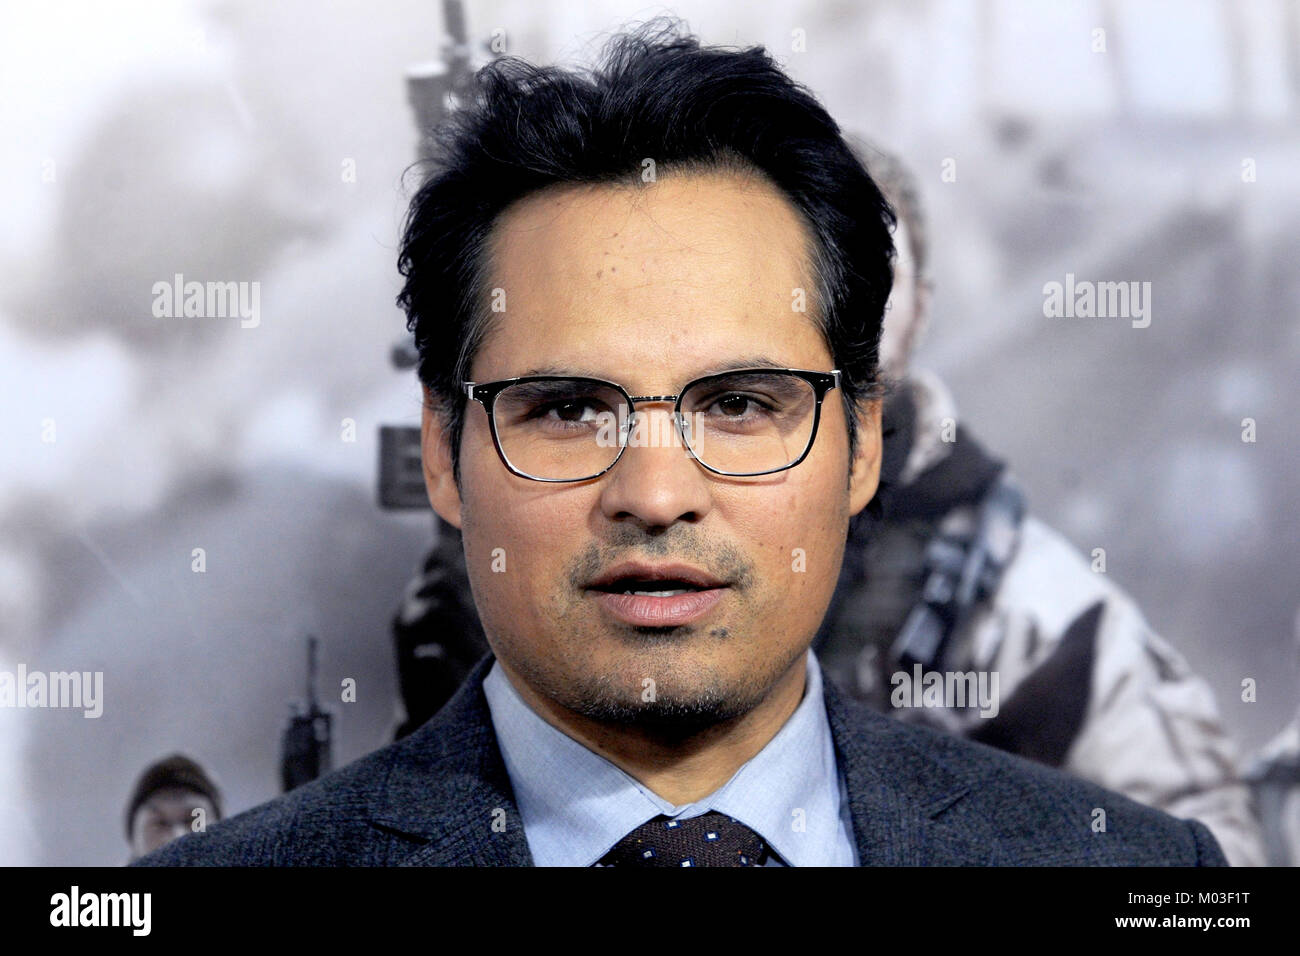 Michael Pena attends the '12 Strong' World Premiere at Jazz at Lincoln Center on January 16, 2018 in New York City. Stock Photo